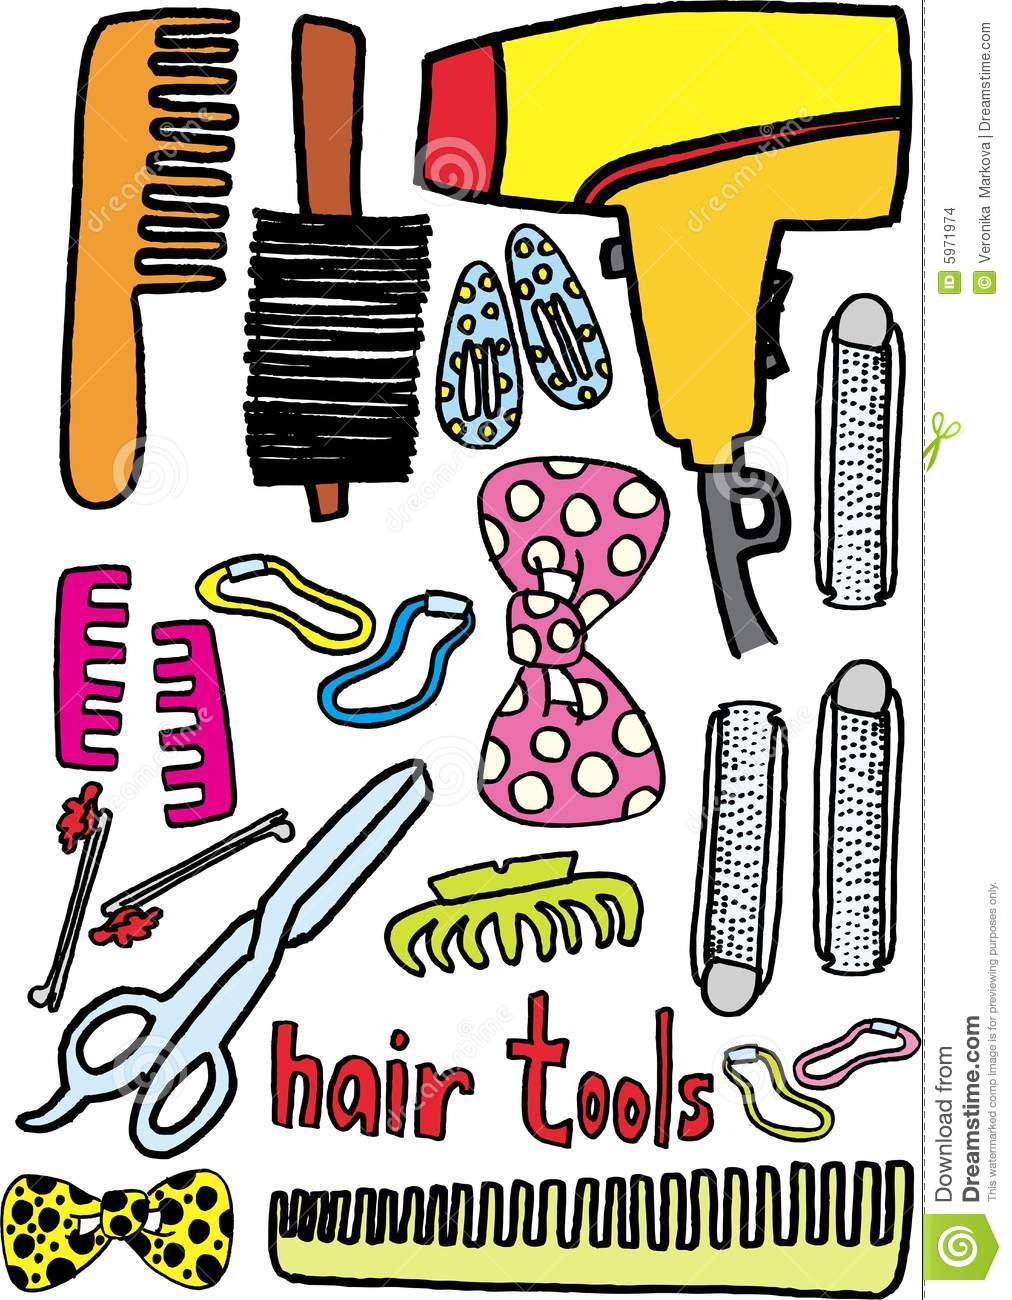 Hair Tools Stock Images - Image: 5971974